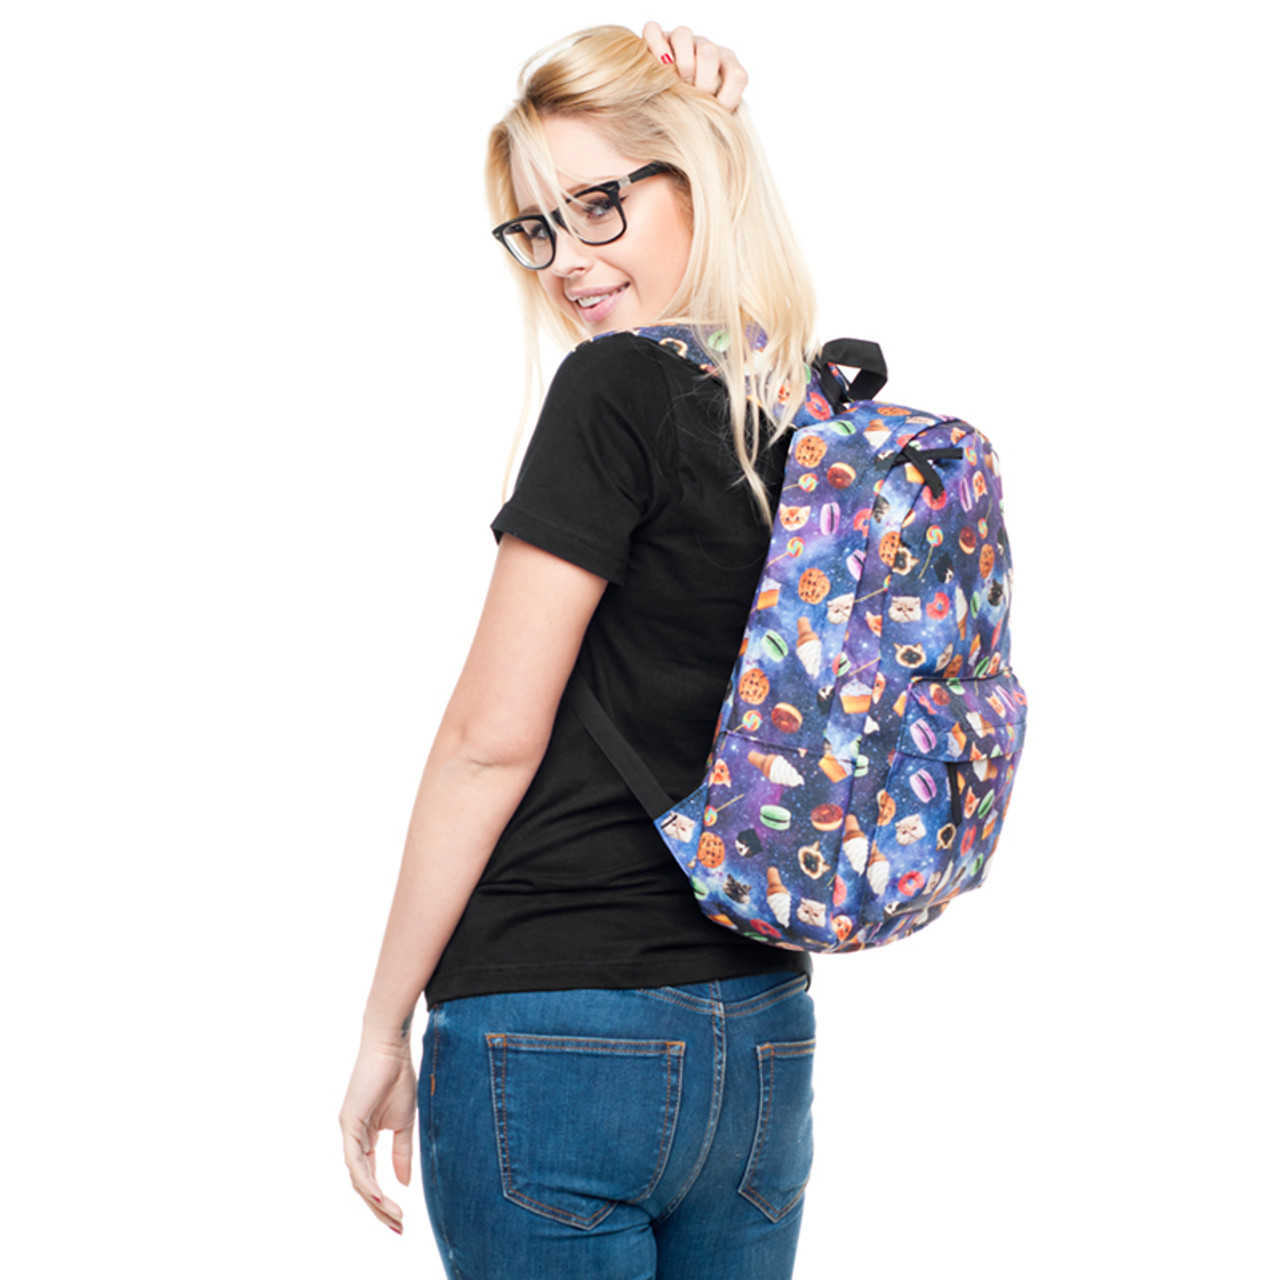 Model wearing Galaxy Kitty Cats and Treats Graphic Print Backpack